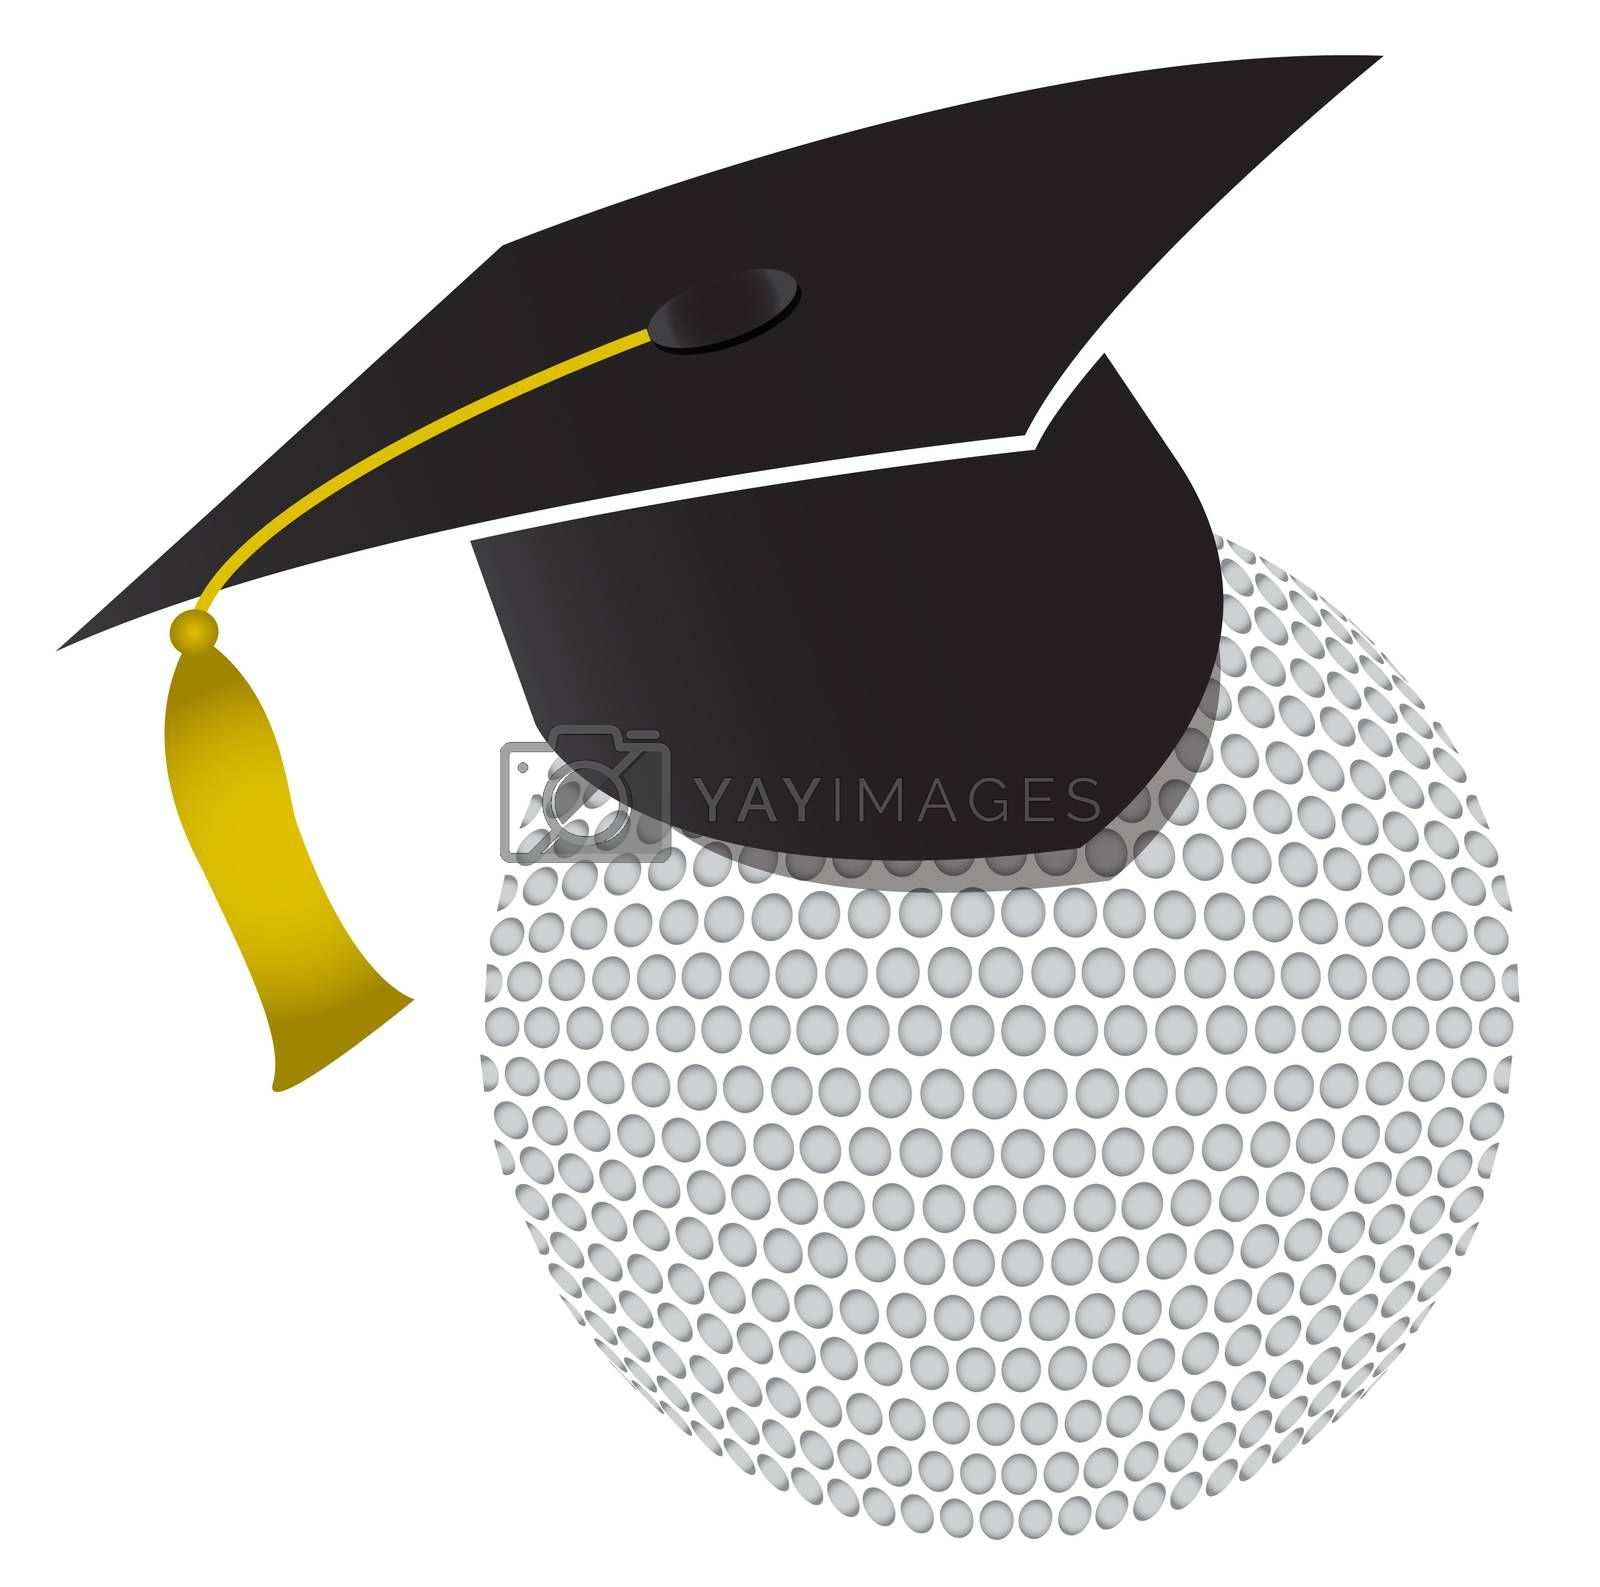 Royalty free image of Golf training school illustration design by alexmillos